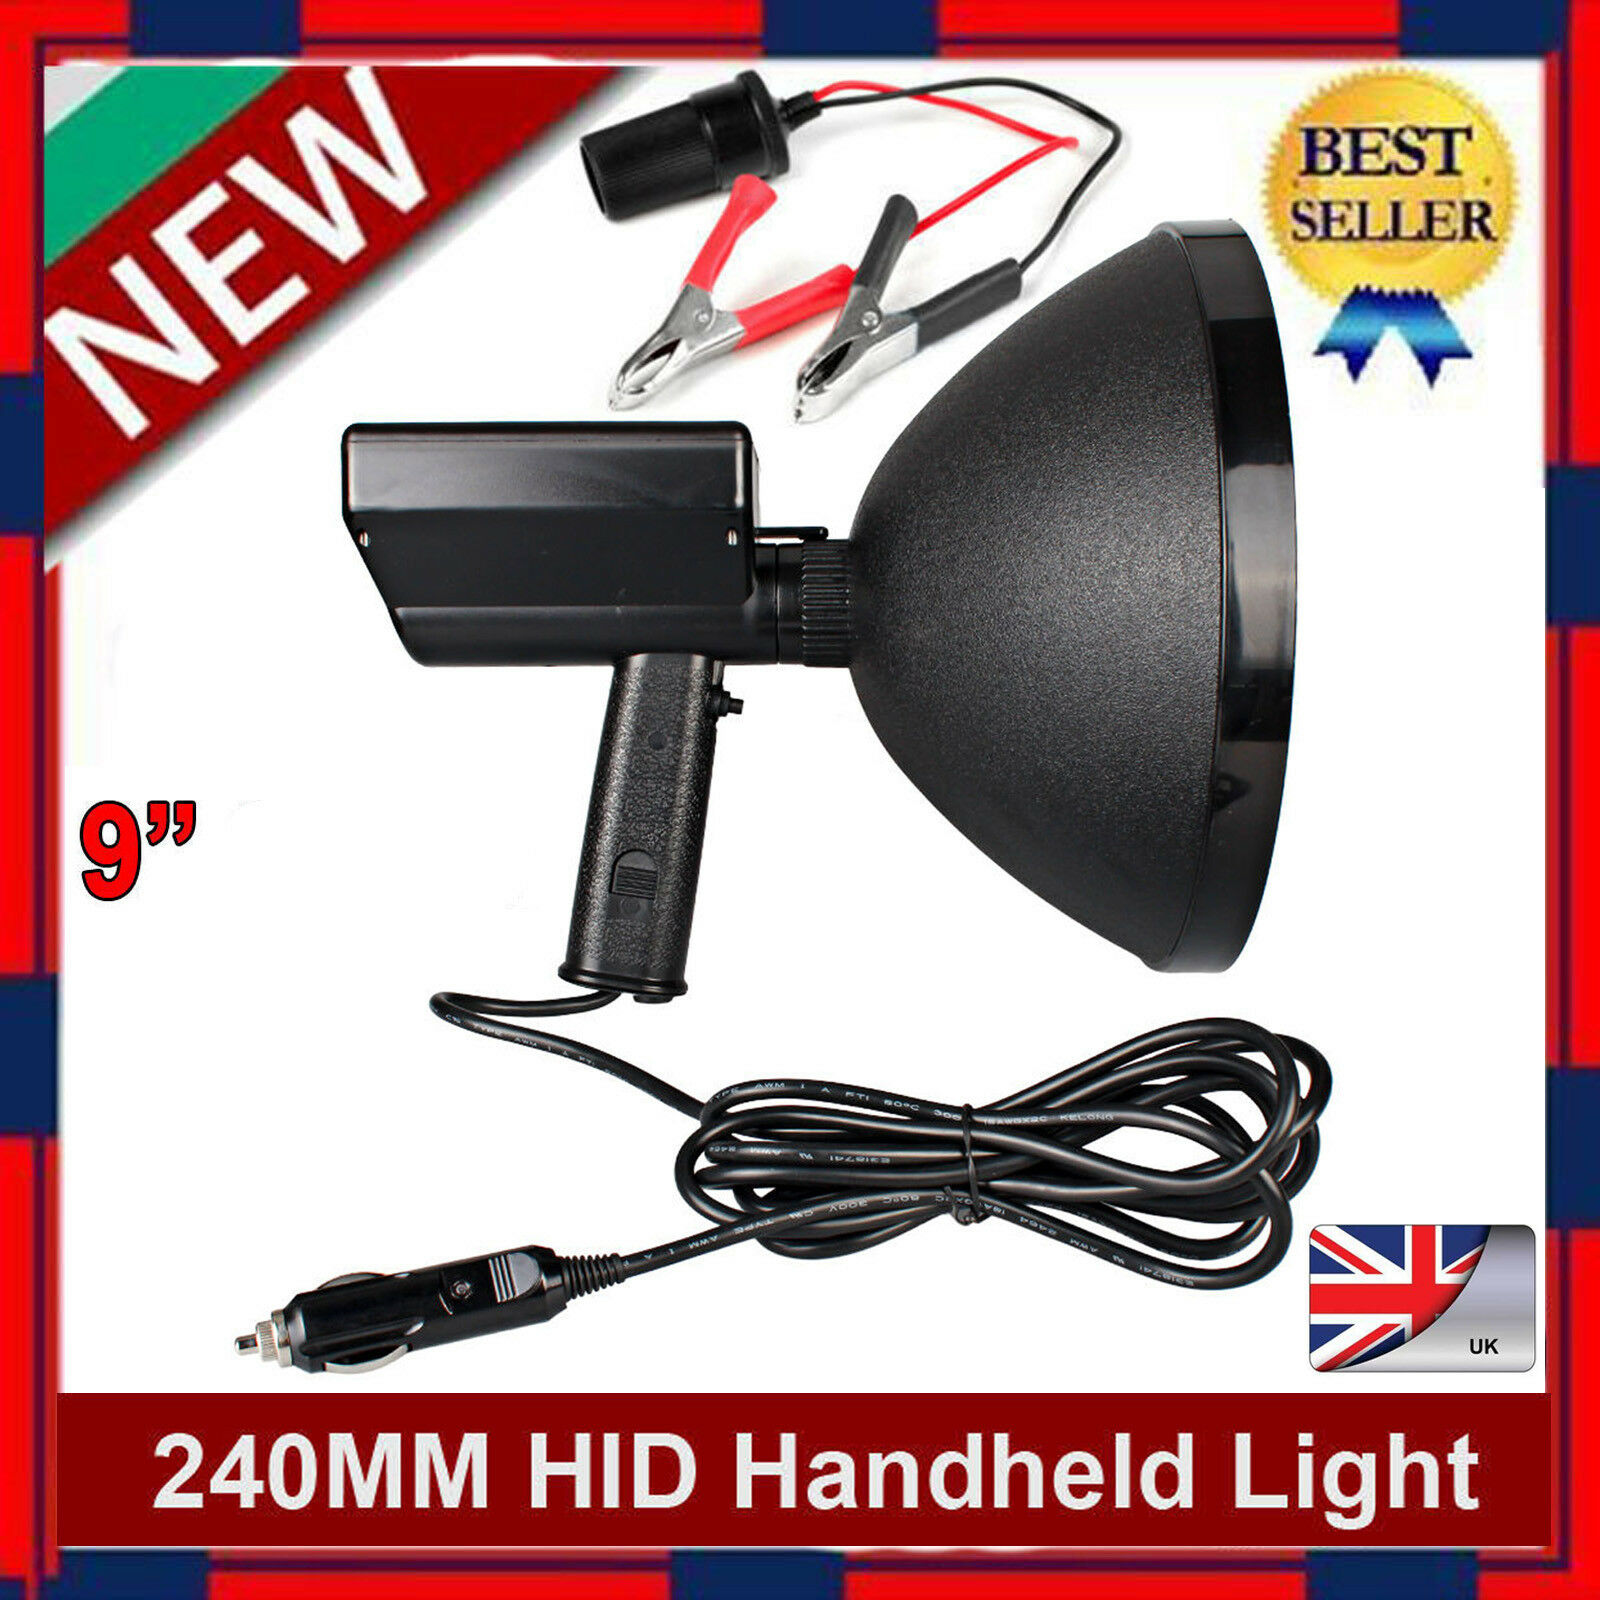 420W HID 9  HANDHELD 240MM CAMPING SPOTLIGHT HUNTING FISHING SHOOTING OFFROAD UK